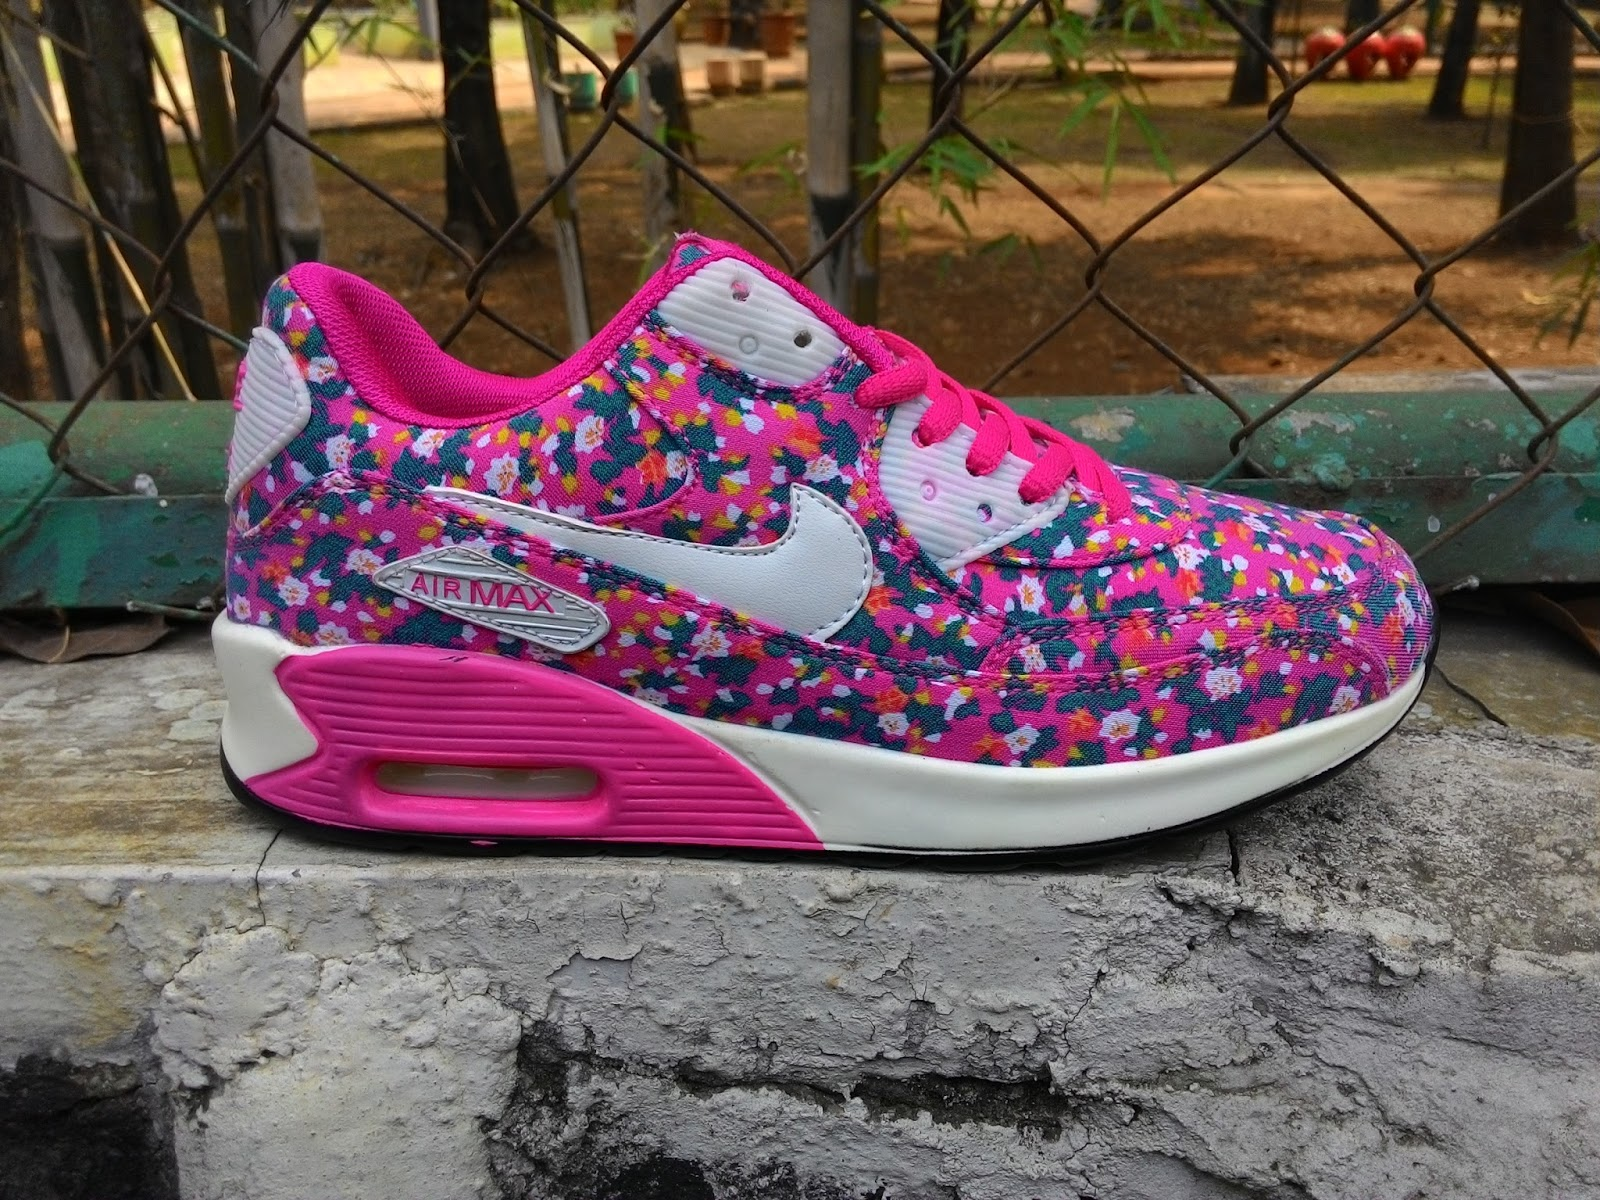 usa nike air max 2015 kw super 33df6 e3ab1  best toko online murah toko  online terpercaya toko online jakarta toko online indonesia nike unveils  more c146135737